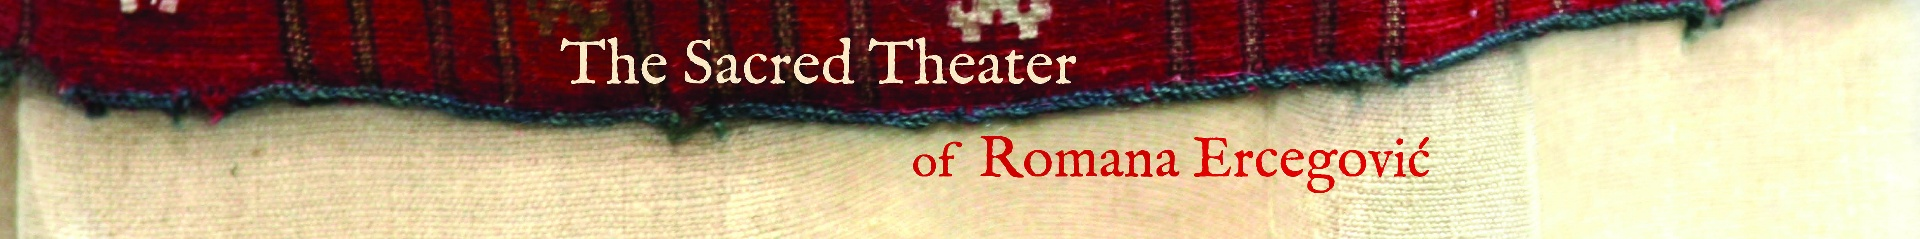 Ritual Theater Soul of the Earth